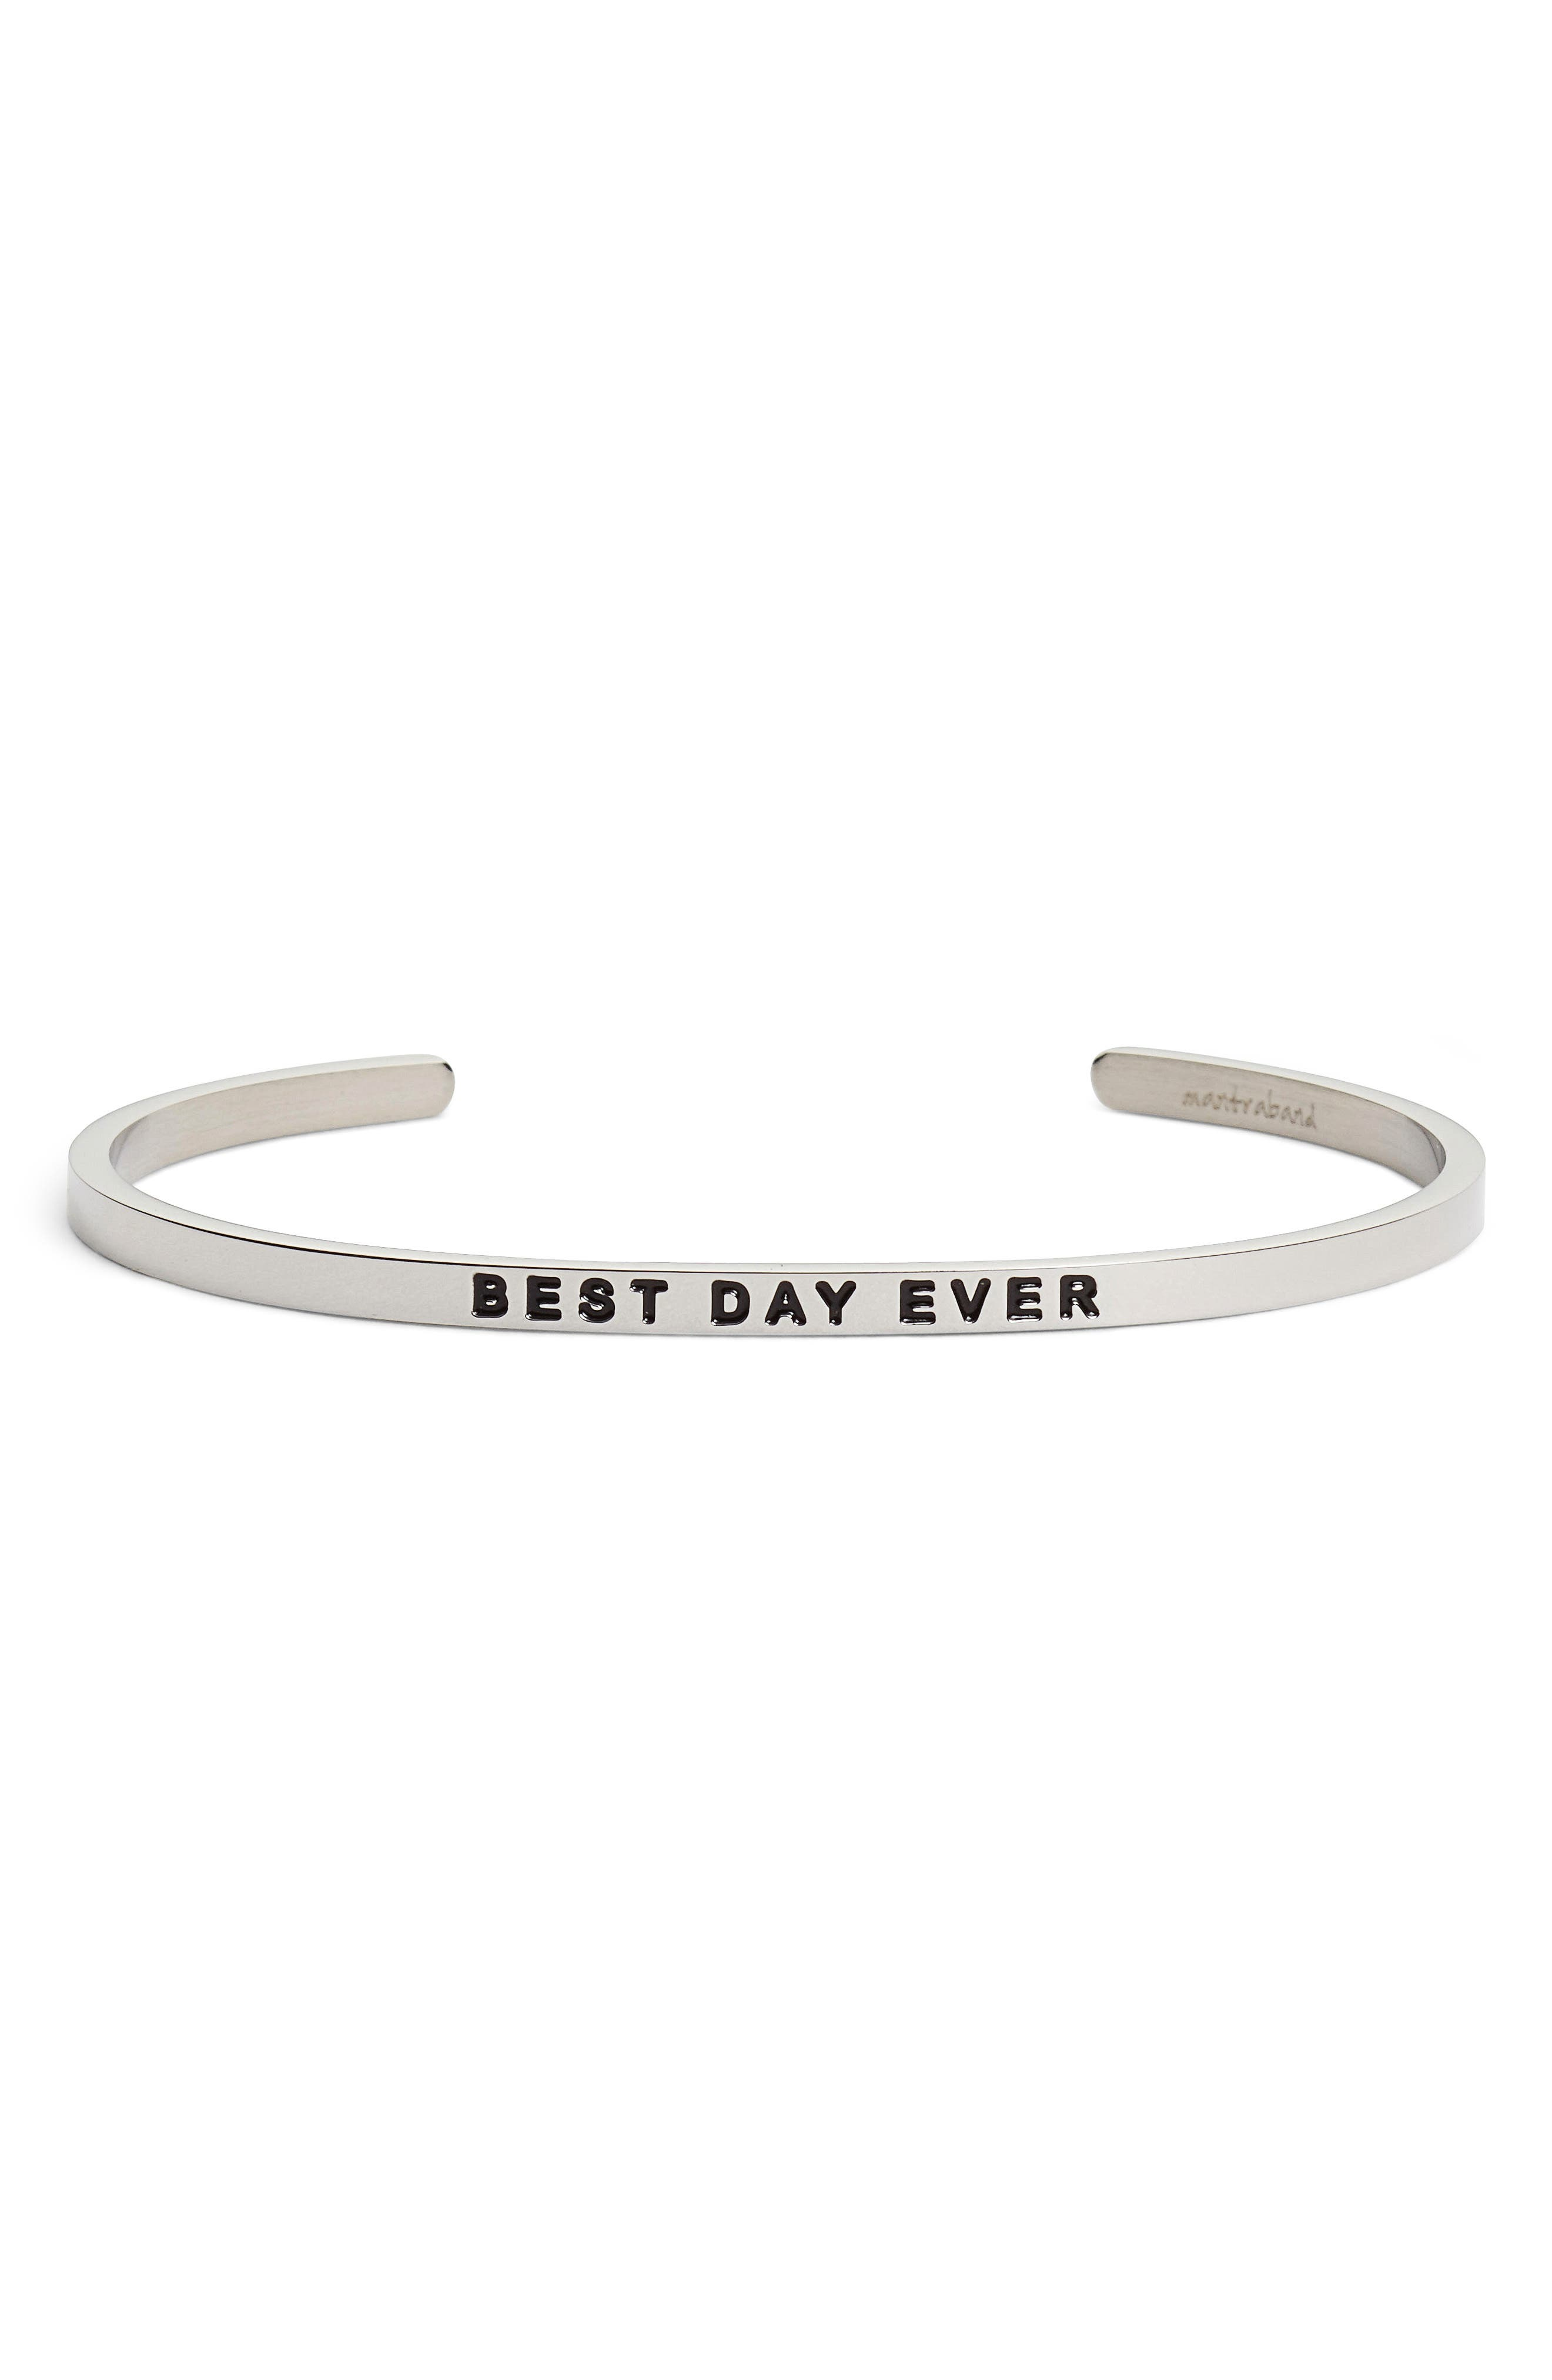 Best Day Ever Cuff,                             Main thumbnail 1, color,                             040